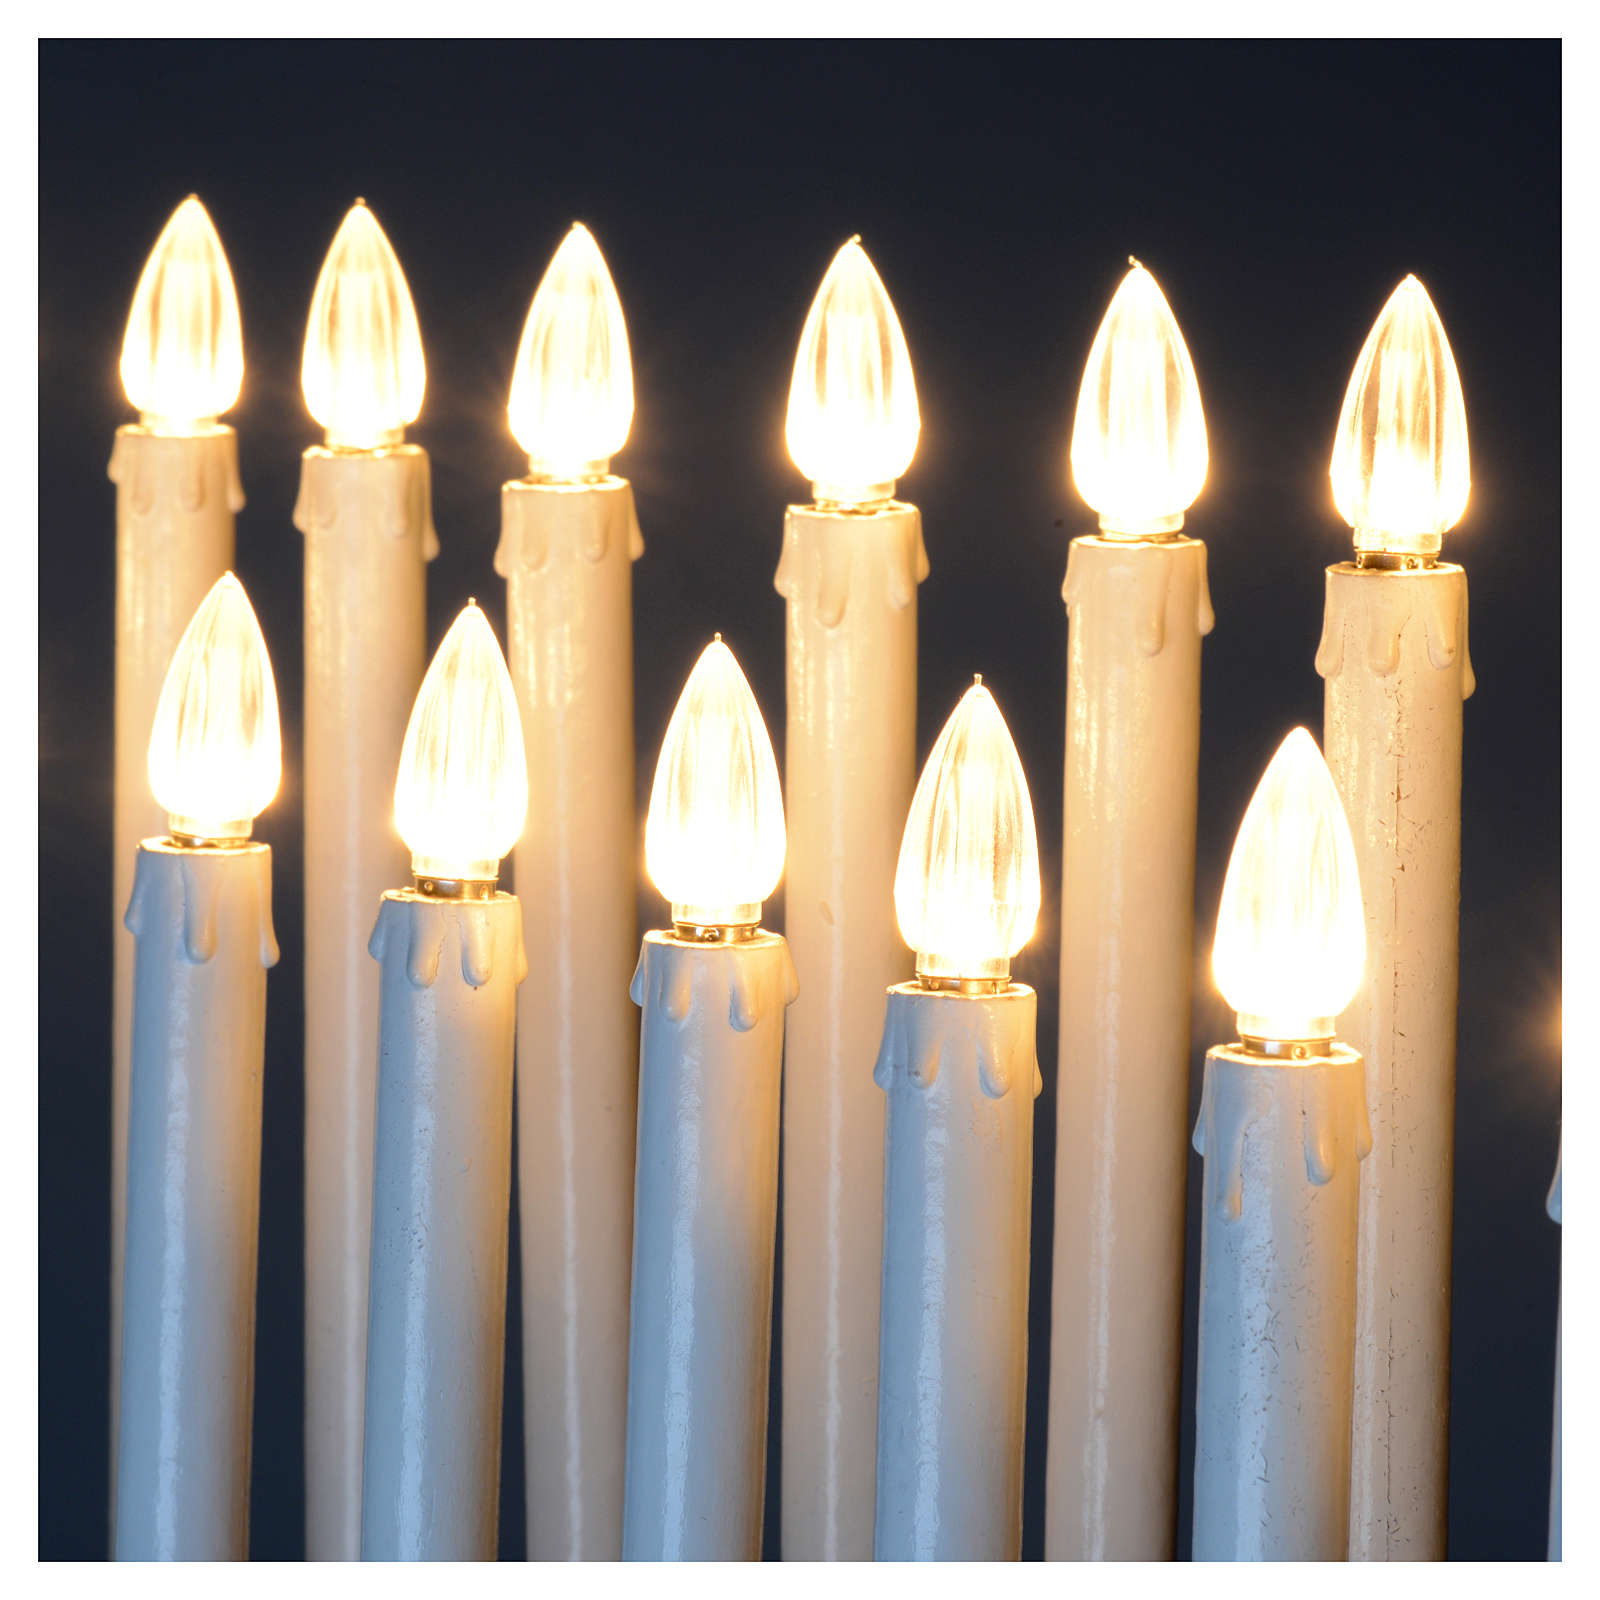 Electric votive offering 31 candles, 12V lights and buttons 4